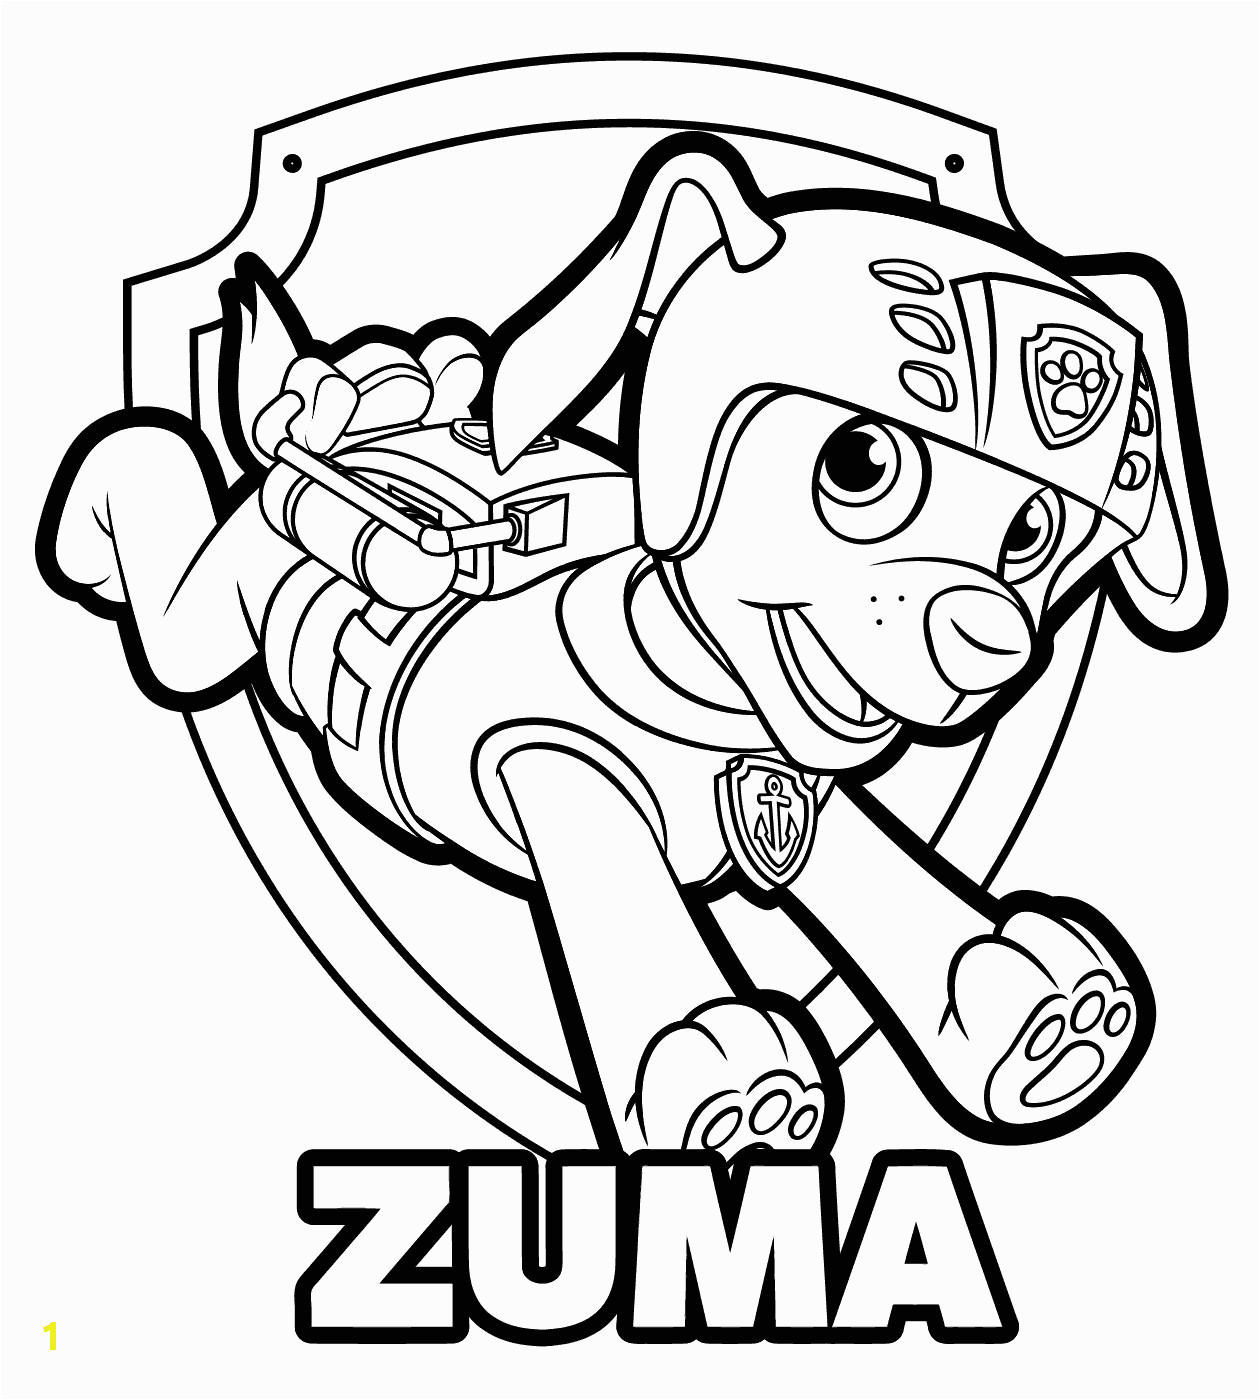 paw patrol for coloring paw patrol coloring pages best coloring pages for kids patrol paw coloring for